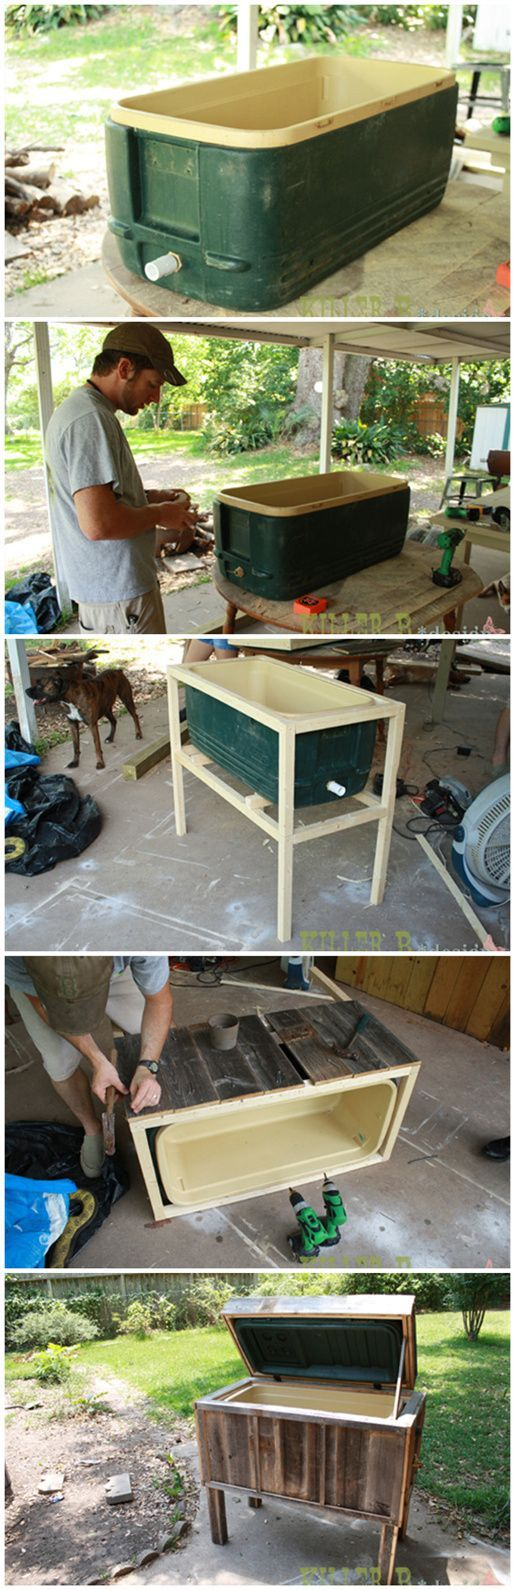 Teds Woodworking® – 16,000 Woodworking Plans & Projects With Videos – Custom Carpentry — TedsWoodworking